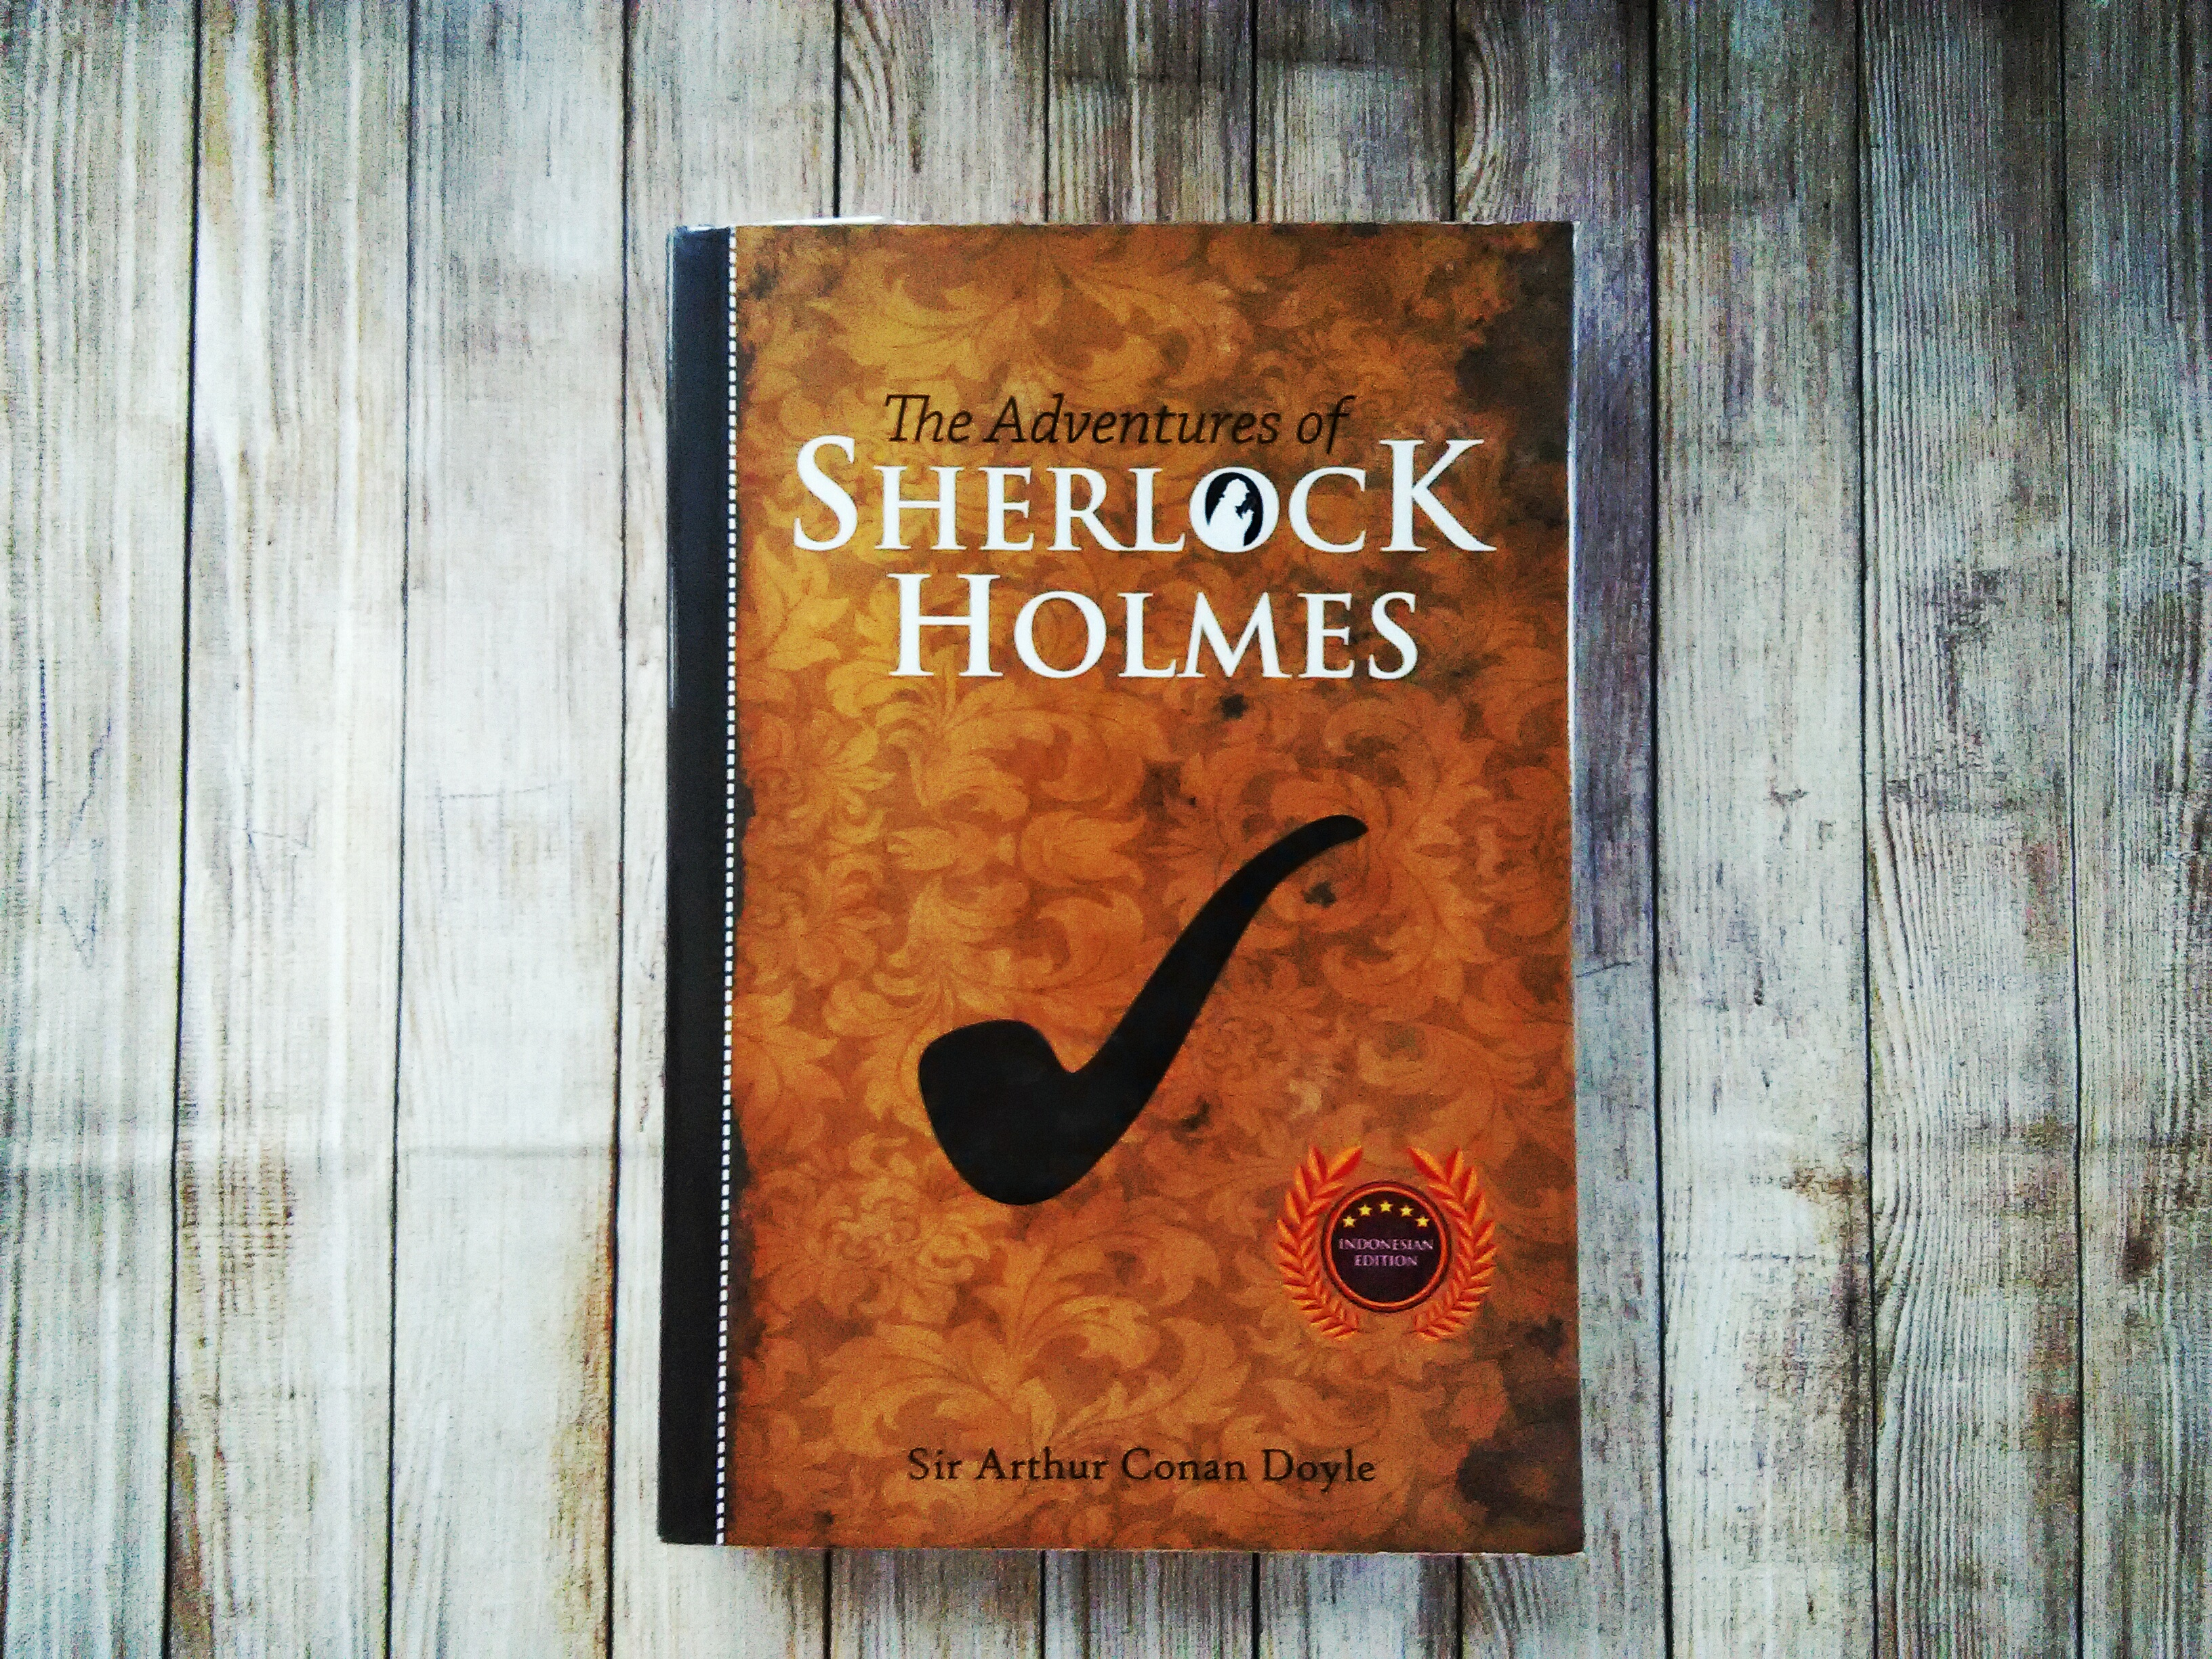 sherlock homes essay The adventures of sherlock homes are a collection of short stories by a physician arthur conan doyle this essay is an assessment of the adventures of sherlock.